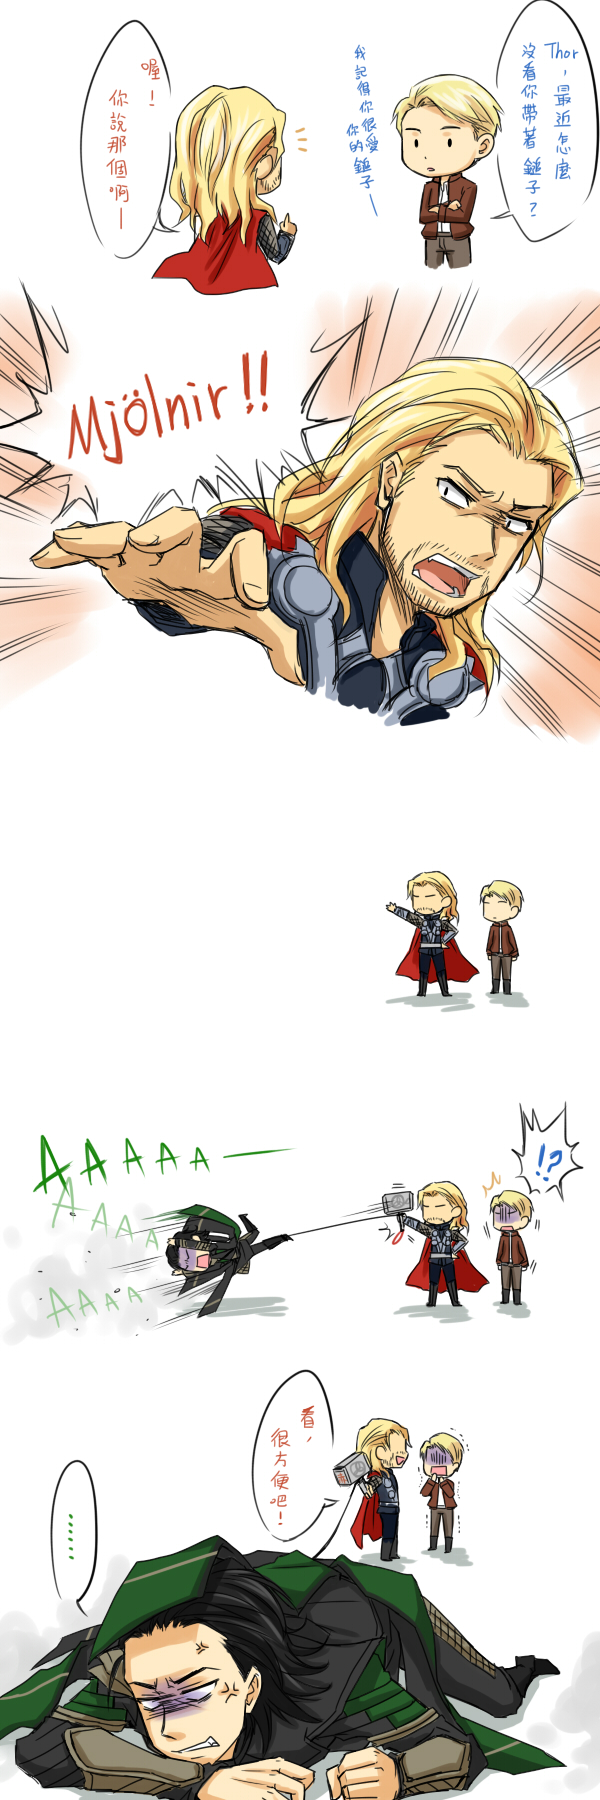 Tags: Anime, Yuna918, Marvel, The Avengers, Thor Odinson, Steven Rogers, Loki Laufeyson, Chinese Text, Hammer (Weapon), Pixiv